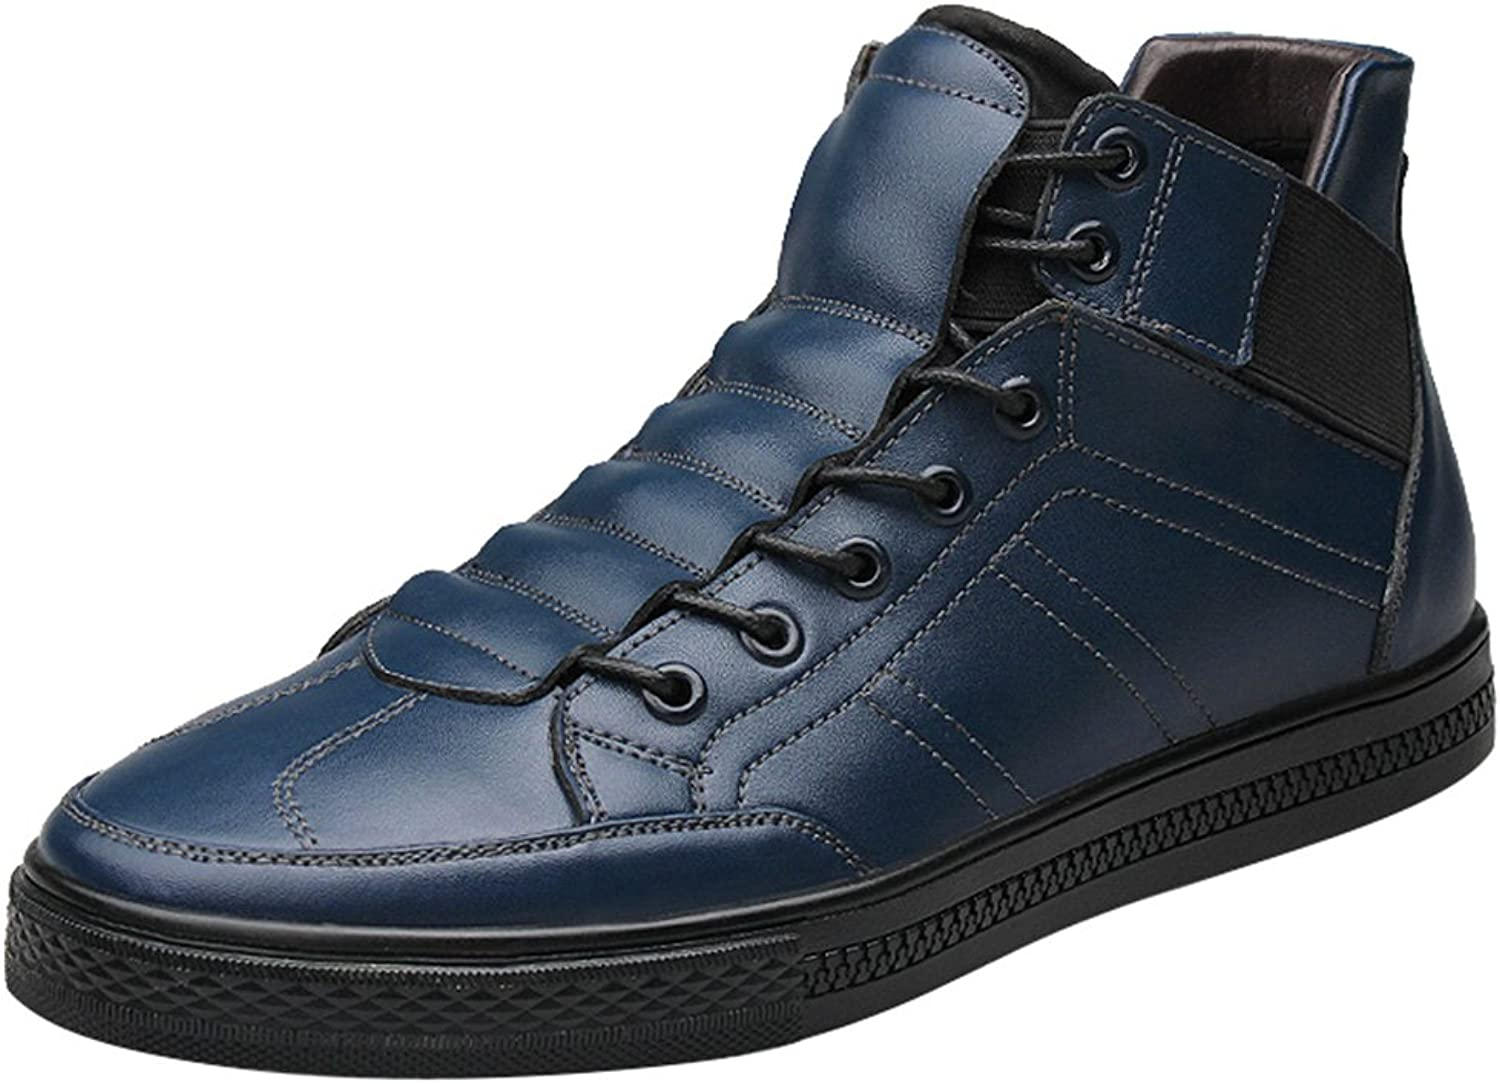 Salabobo QYY-LT1698 Mens Fashion Leather Casual Comfy Warm High Top Snow Ankle Boots